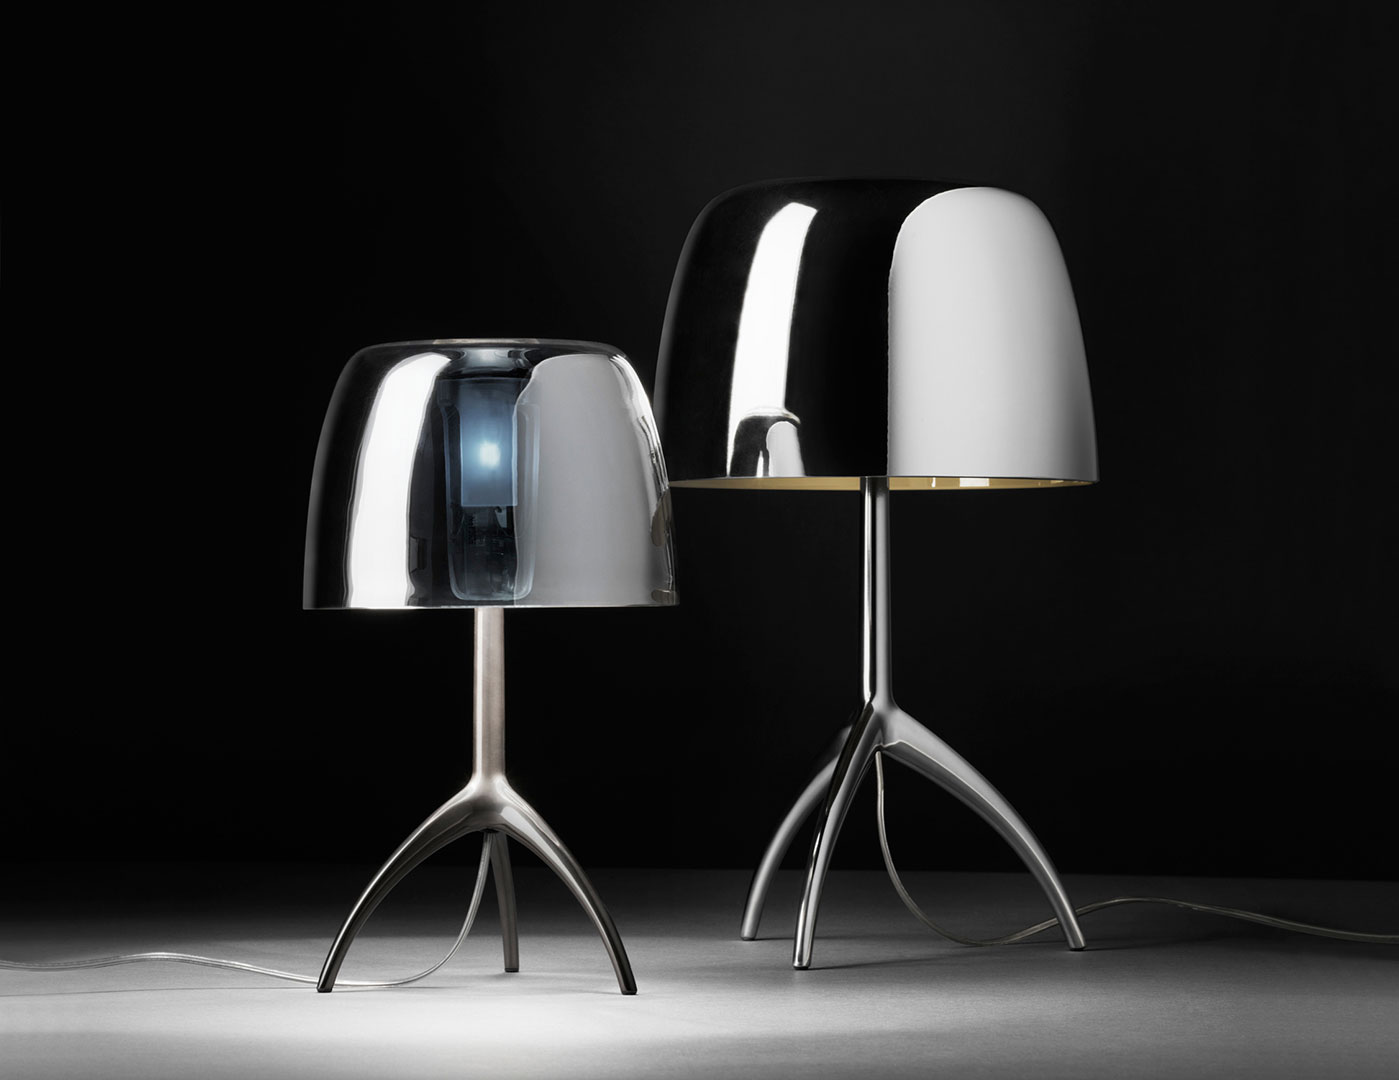 Discover The Table Lamps That Will Creat Do a Boost in Your Home Office table lamps Discover The Table Lamps That Will Do a Boost in Your Home Office 18